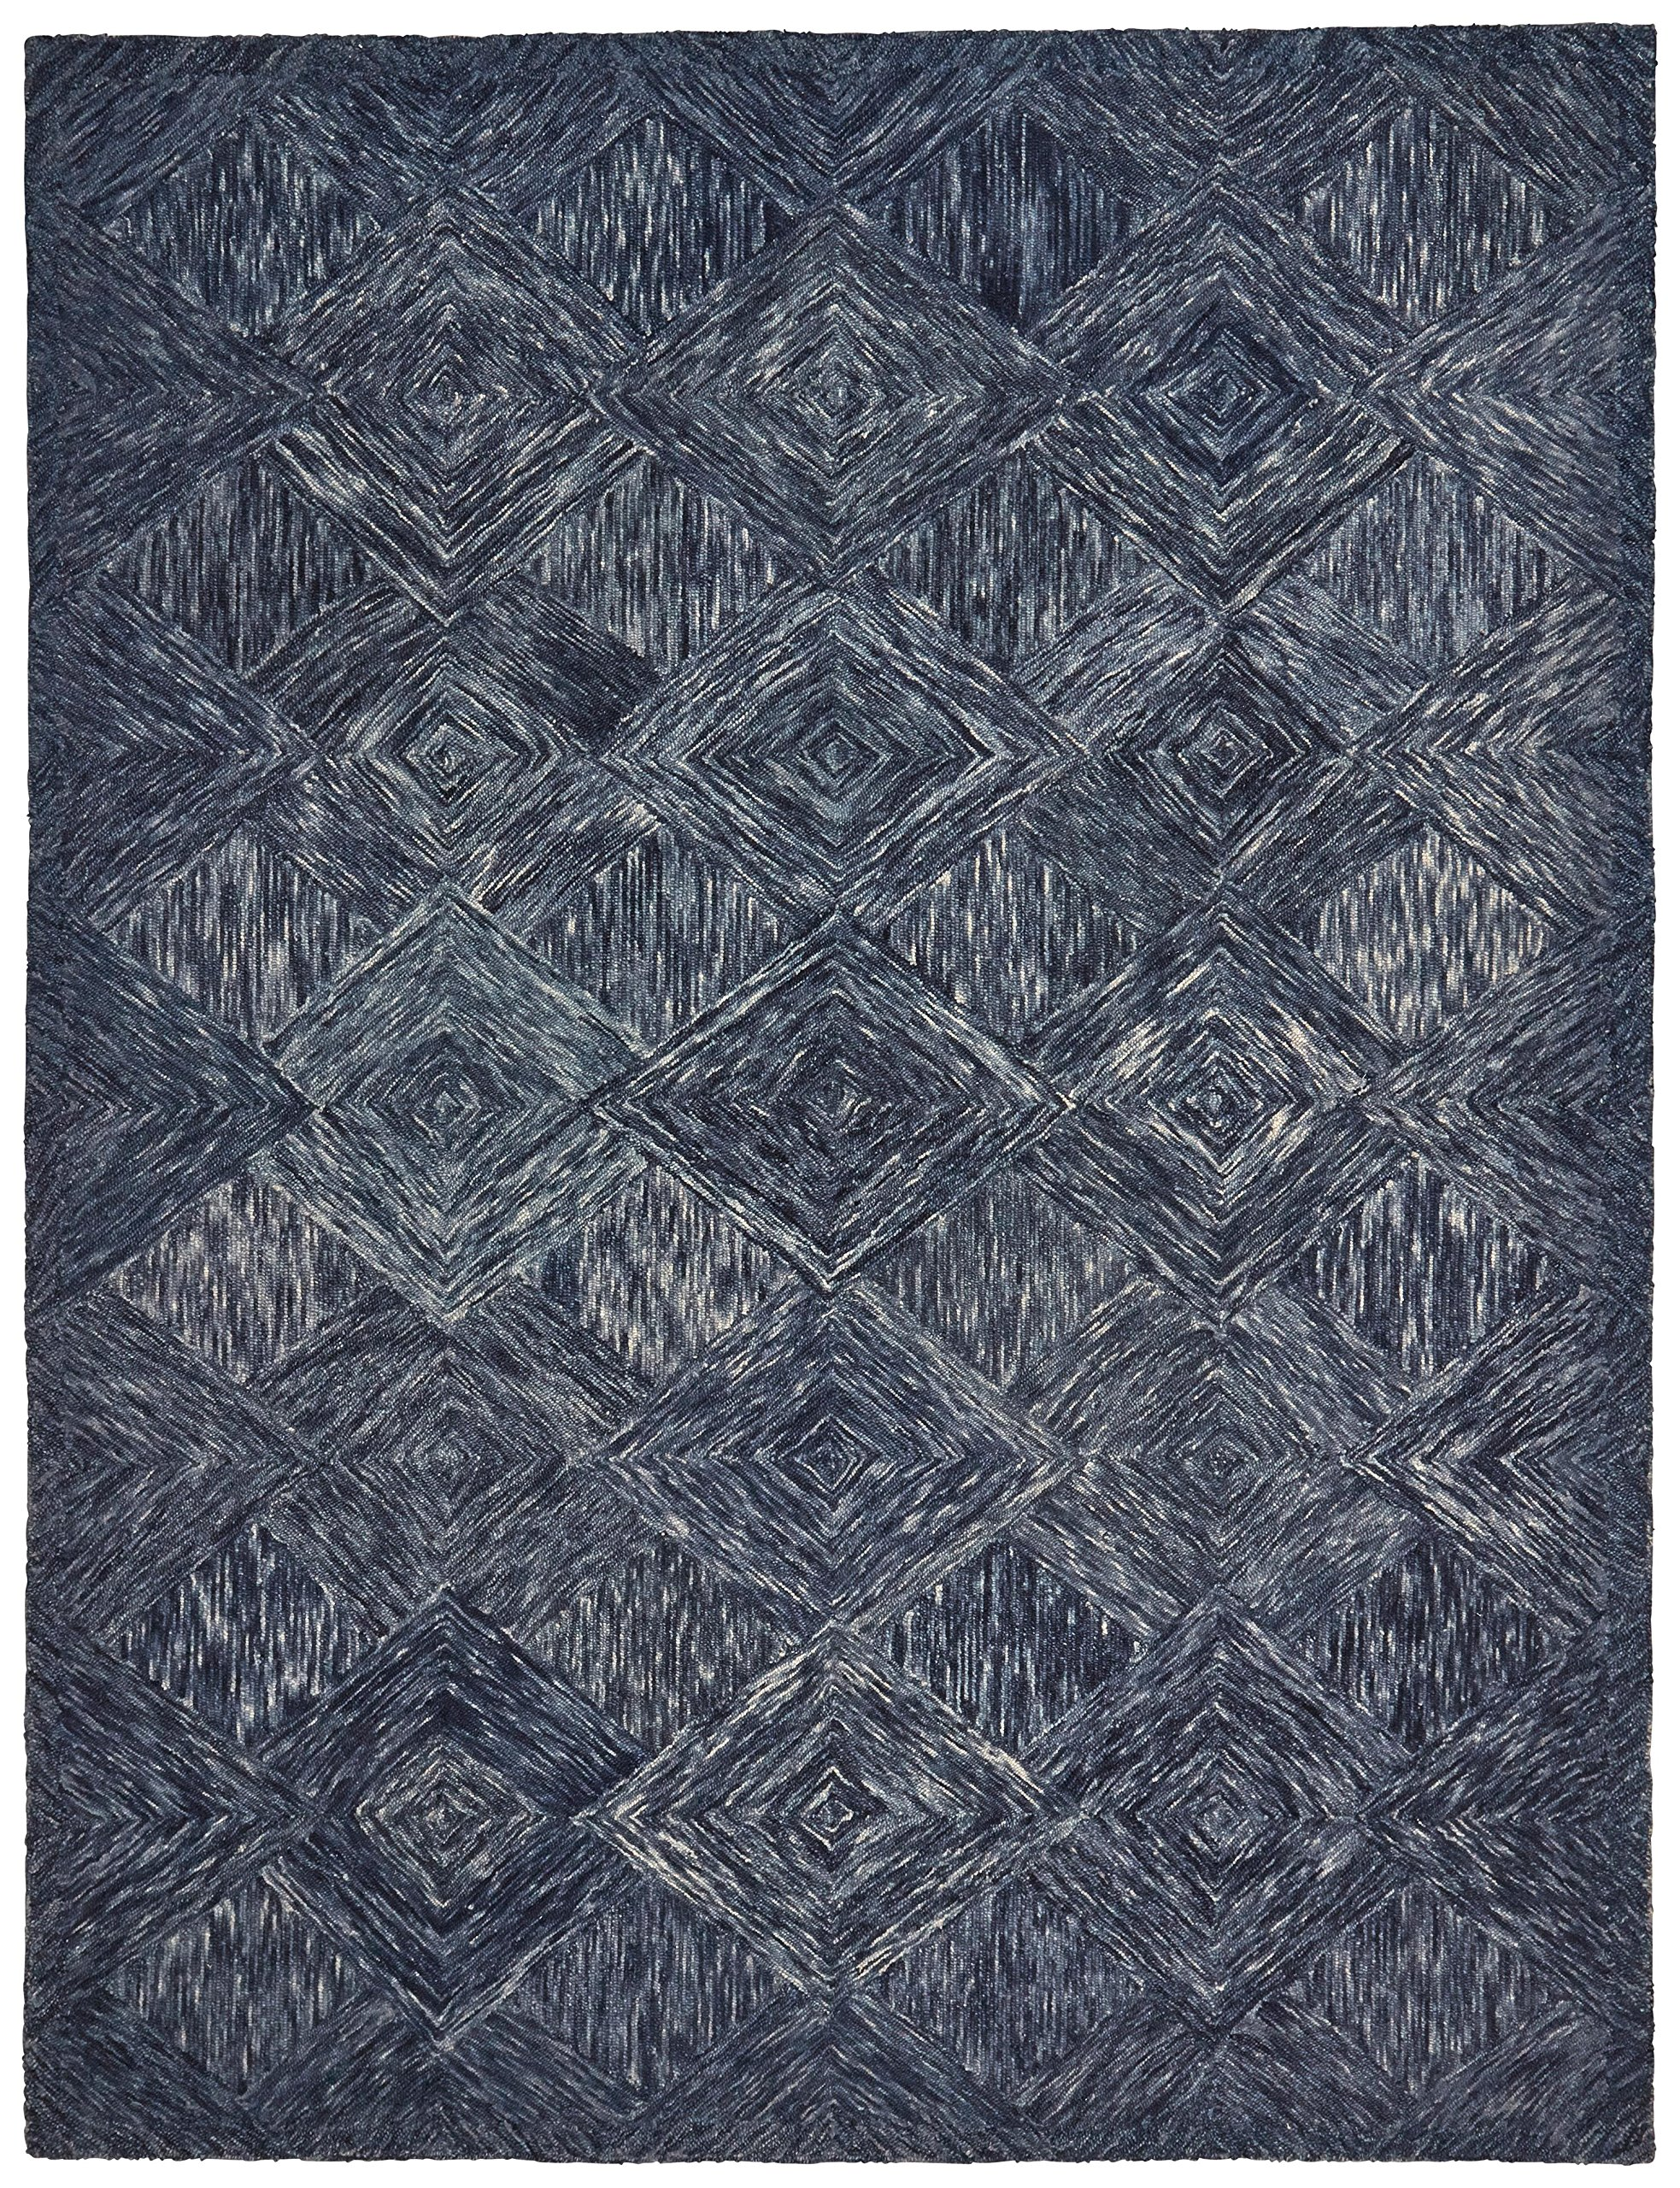 Rivet Motion Patterned Wool Area Rug, 8' x 10'6, Denim Blue by Rivet (Image #1)